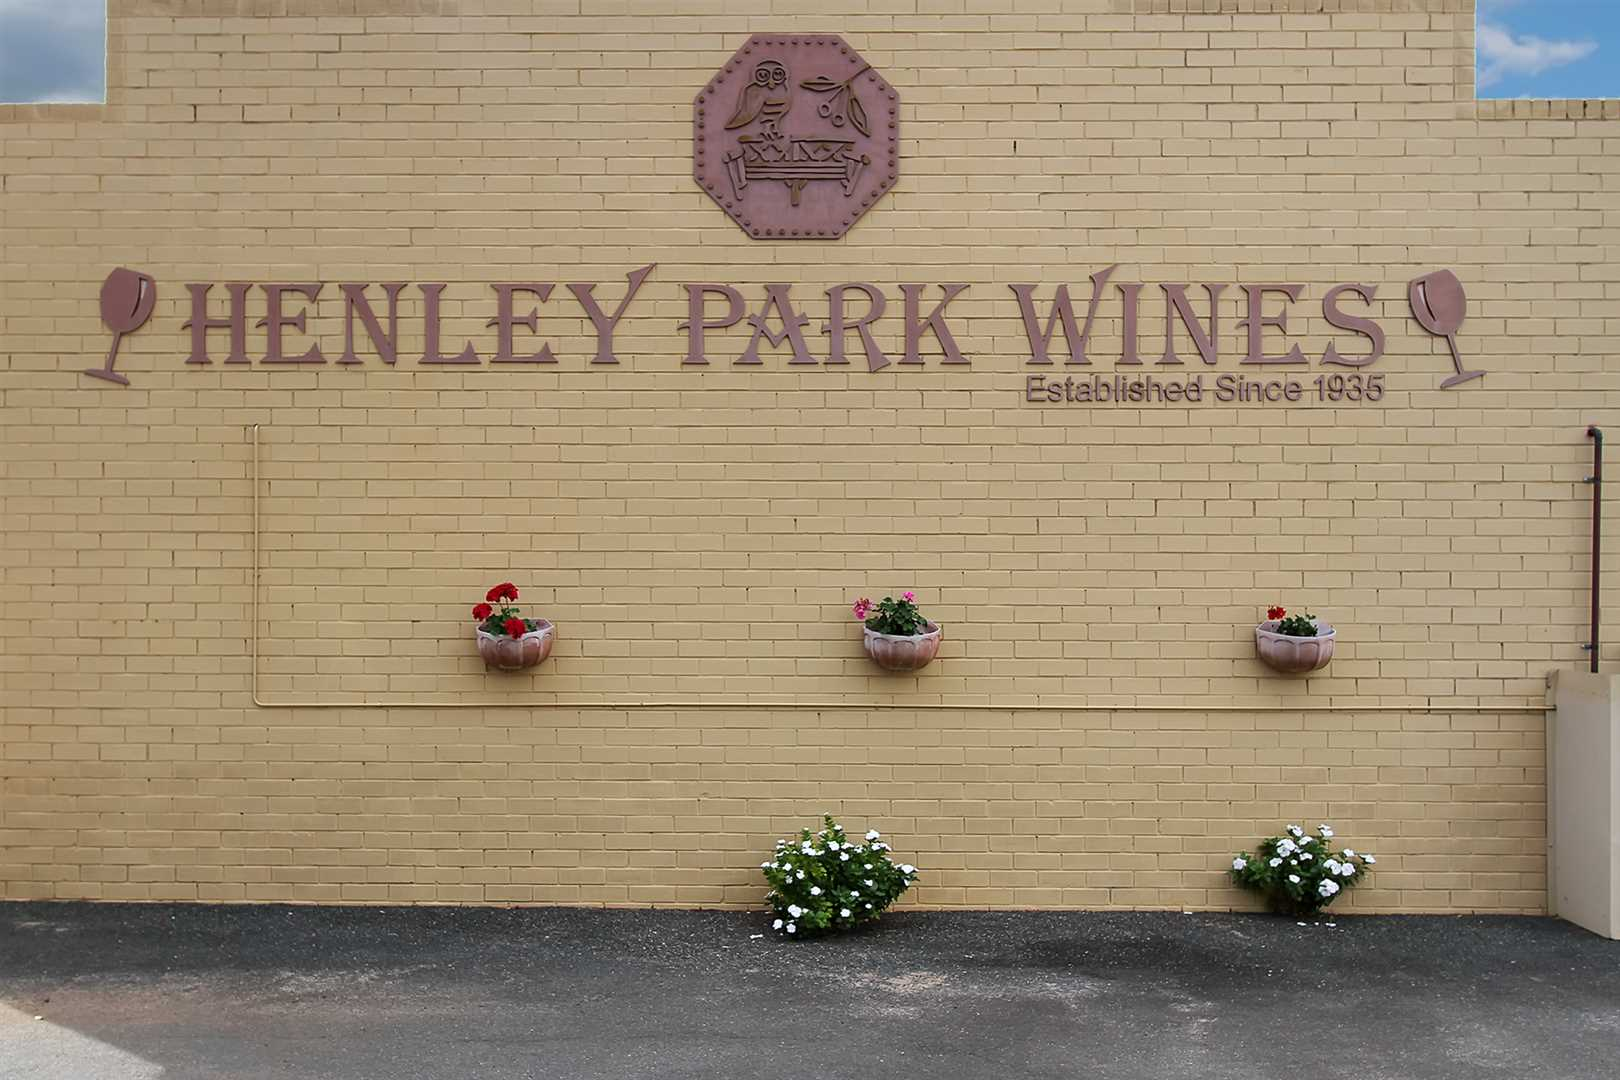 Henley Park Winery & Cafe